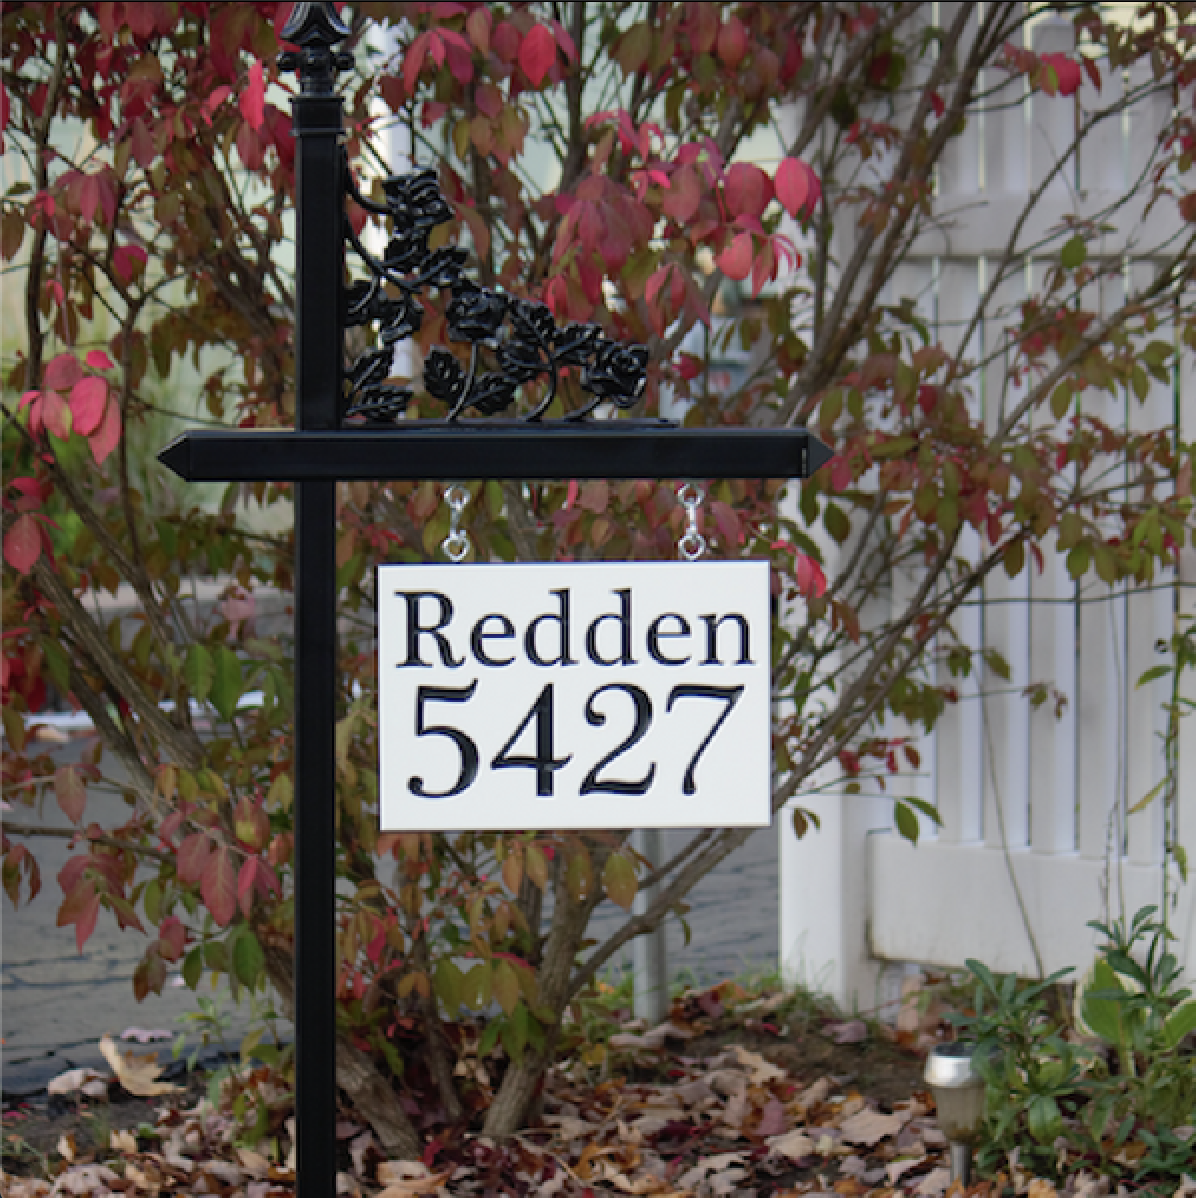 Custom black lawn sign holder with house number with family name on a customized engraved sign made from white-black-white color core. Contact us for details if you're interested in a black lawn sign.